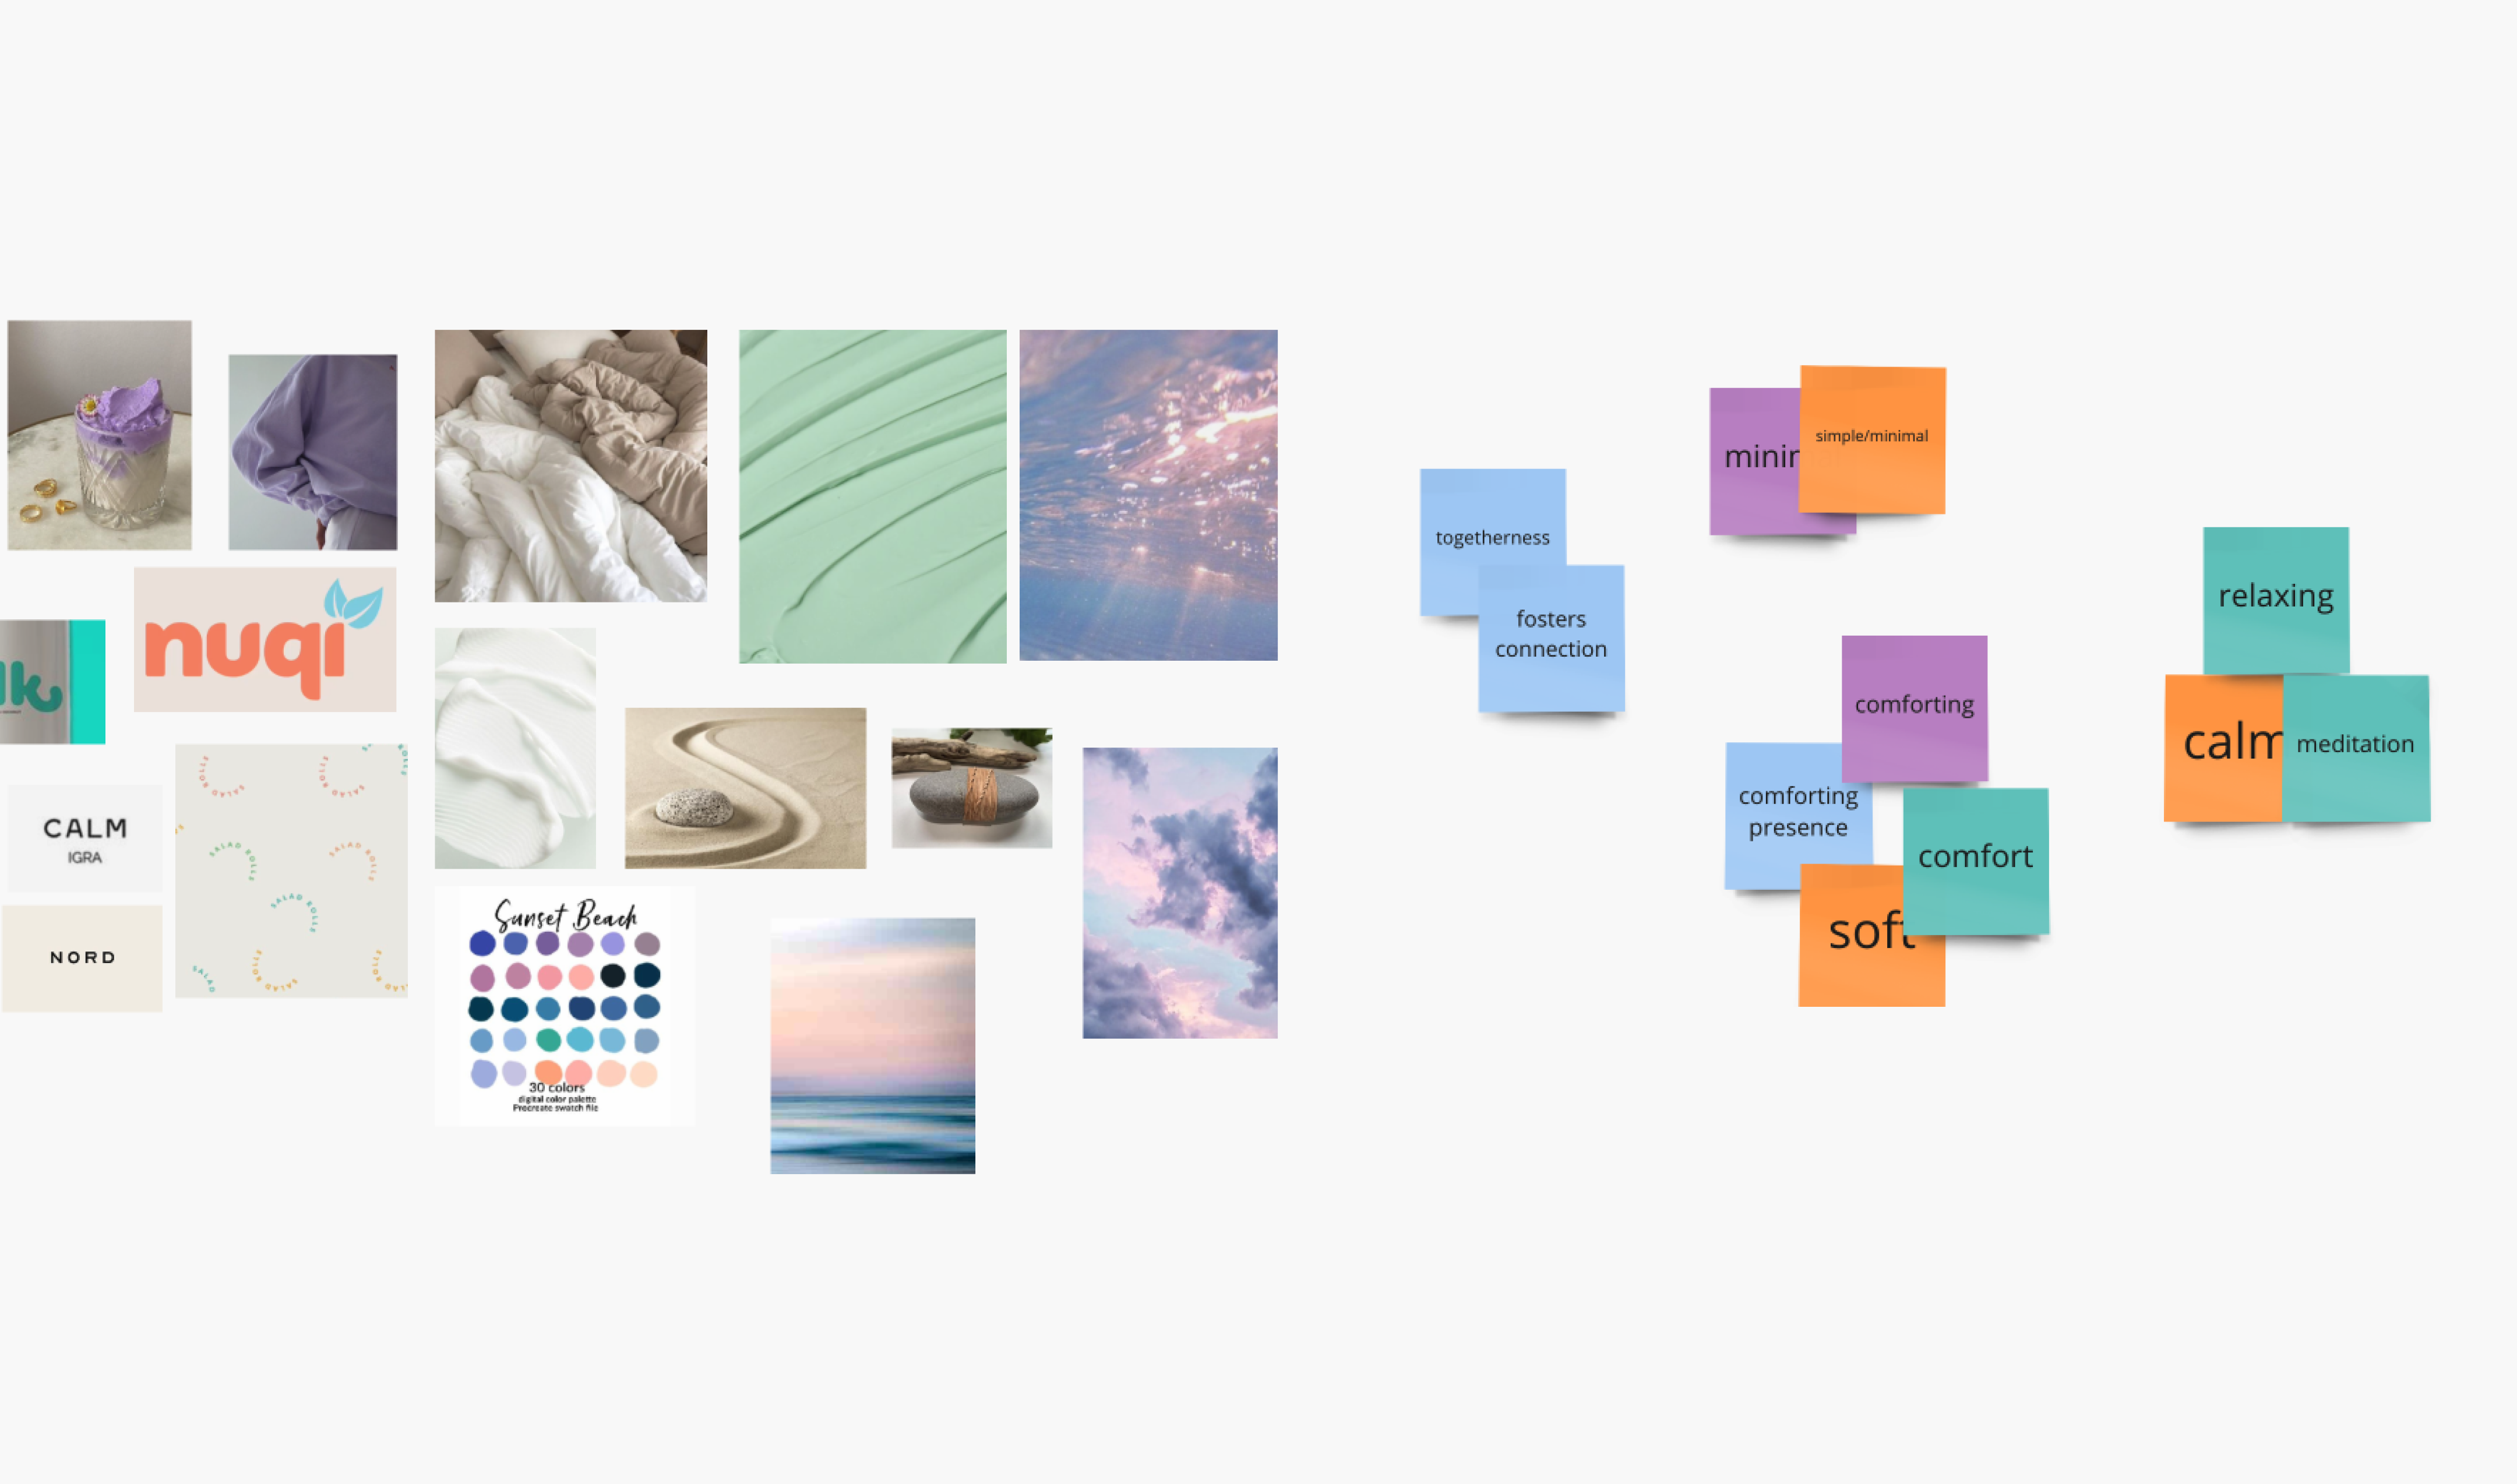 (Left) Moodboard featuring purples, greens, pinks and images that elicit comfort. (Right) Sticky notes of brand values that tie into our design dimensions.